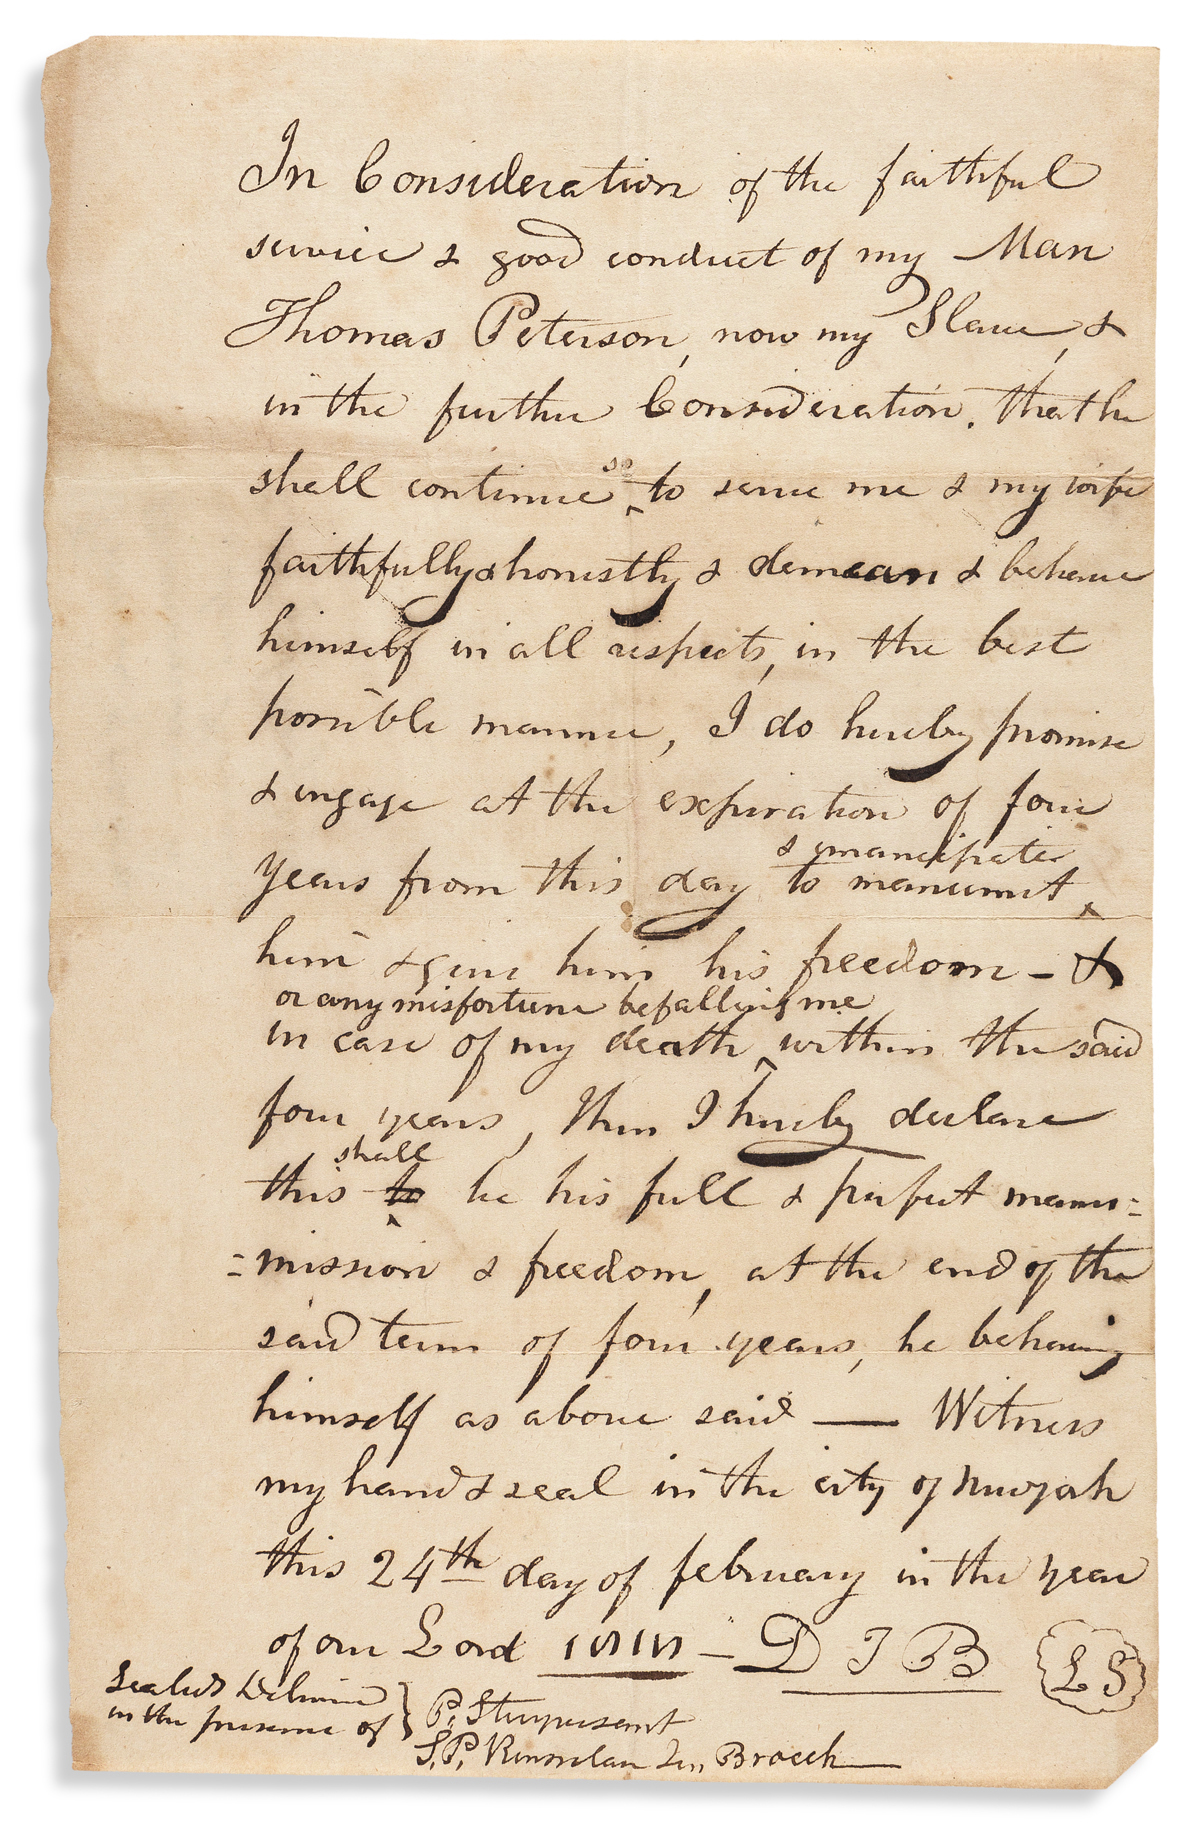 (SLAVERY AND ABOLITION.) Conditional manumission to Thomas Peterson, now my slave granted by a prominent New York politician.